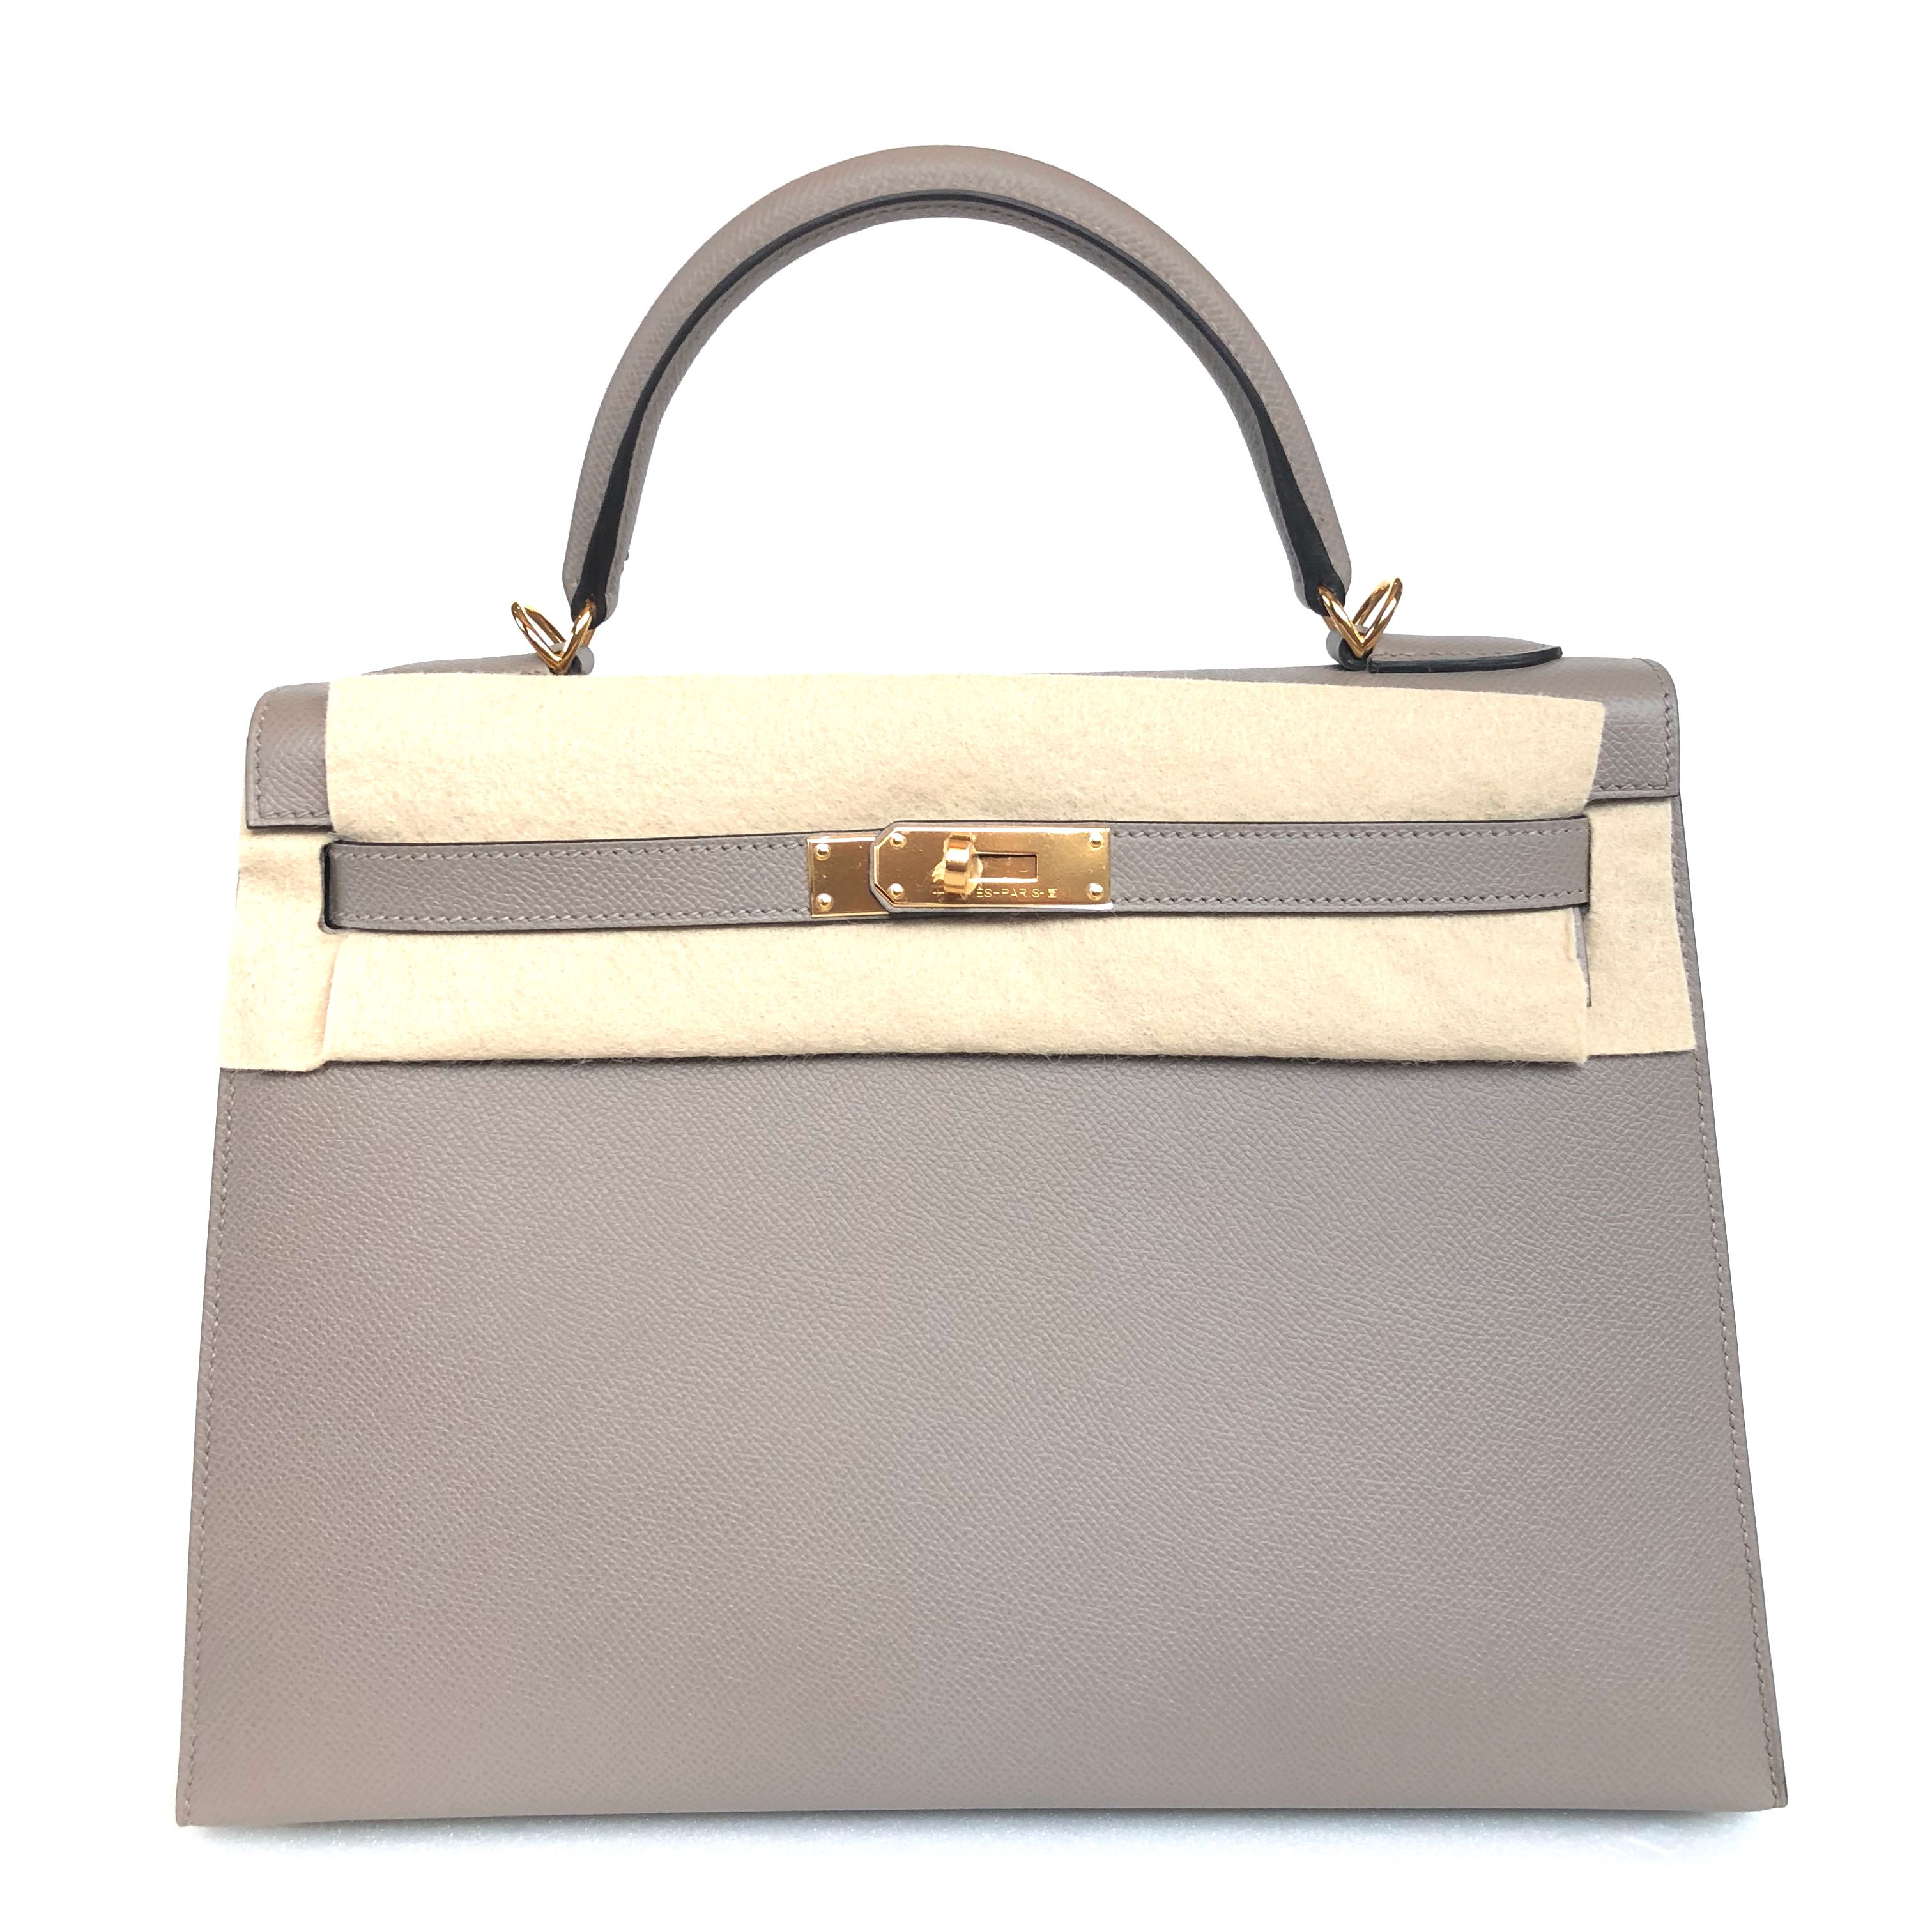 62d497a06682 Hermes - Gris Asphalte Kelly 32 Sellier in Veau Epsom with GHW ...